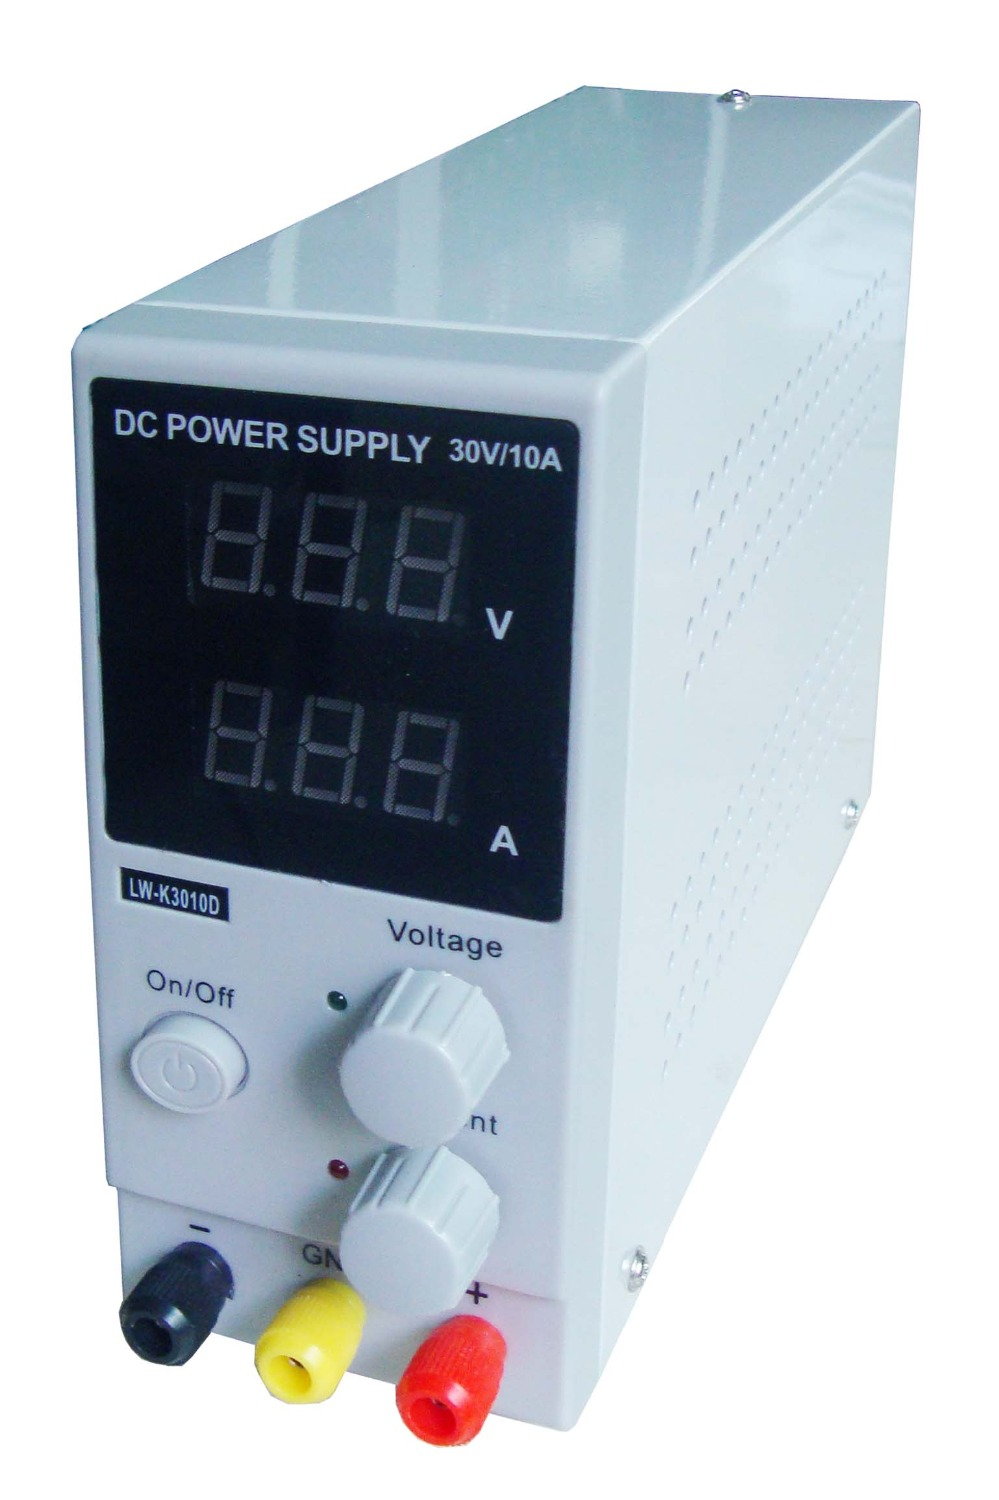 LW 3010D DC power 110V 220V Mini Adjustable Digital DC power supply 0~30V 0~10A Switching Power supply certification US EU Plug 0 30v 0 20a output brand new digital adjustable high power switching dc power supply variable 220v